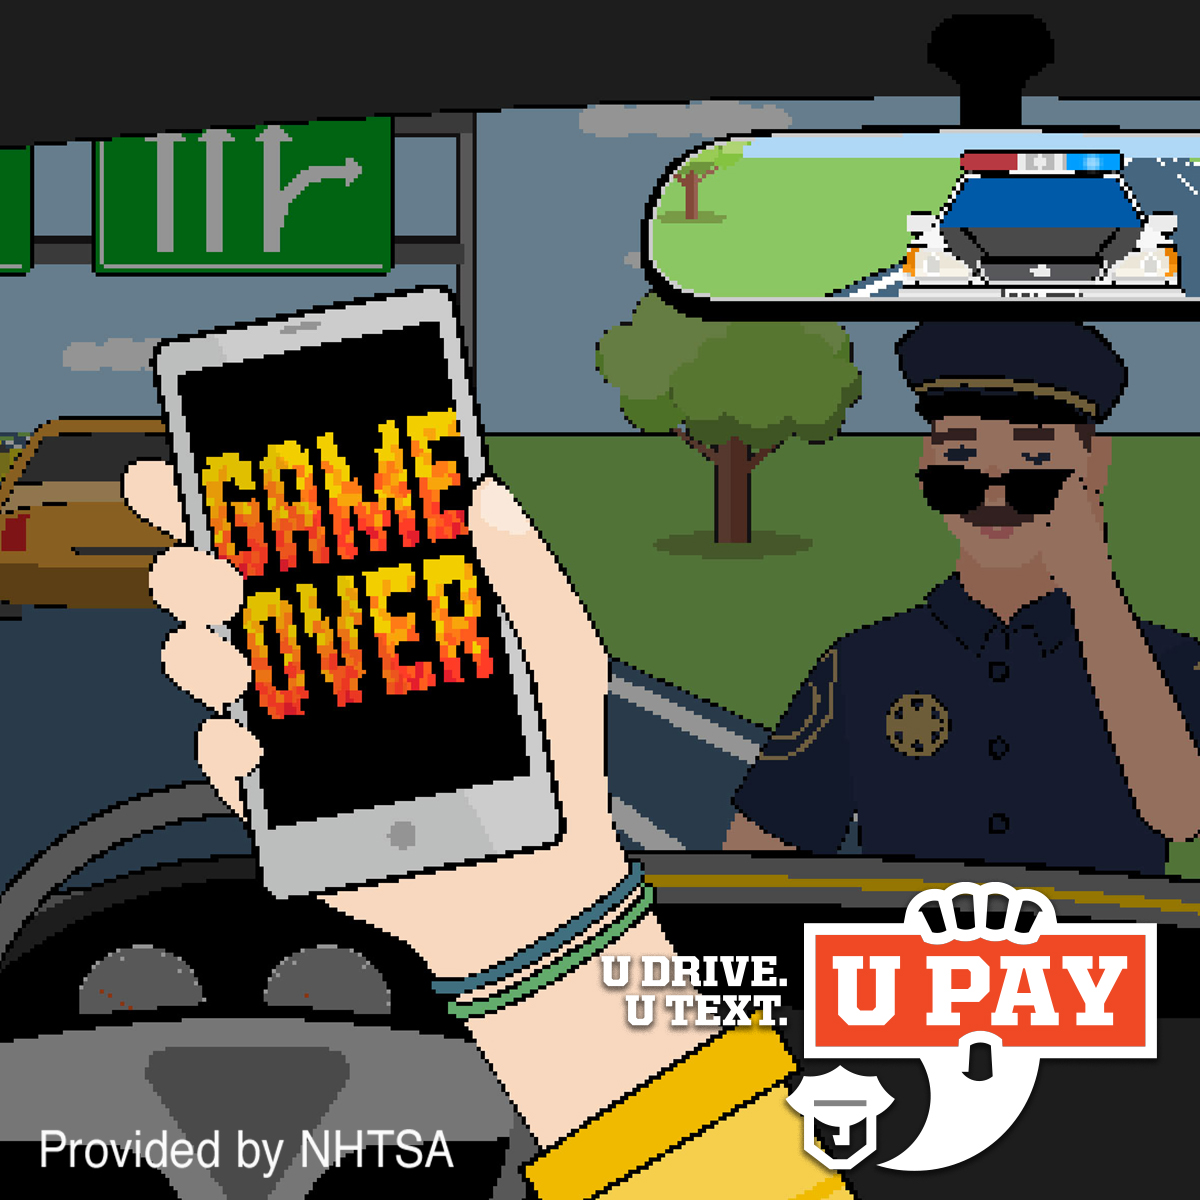 u drive u text ad of cop pulling over distracted driver